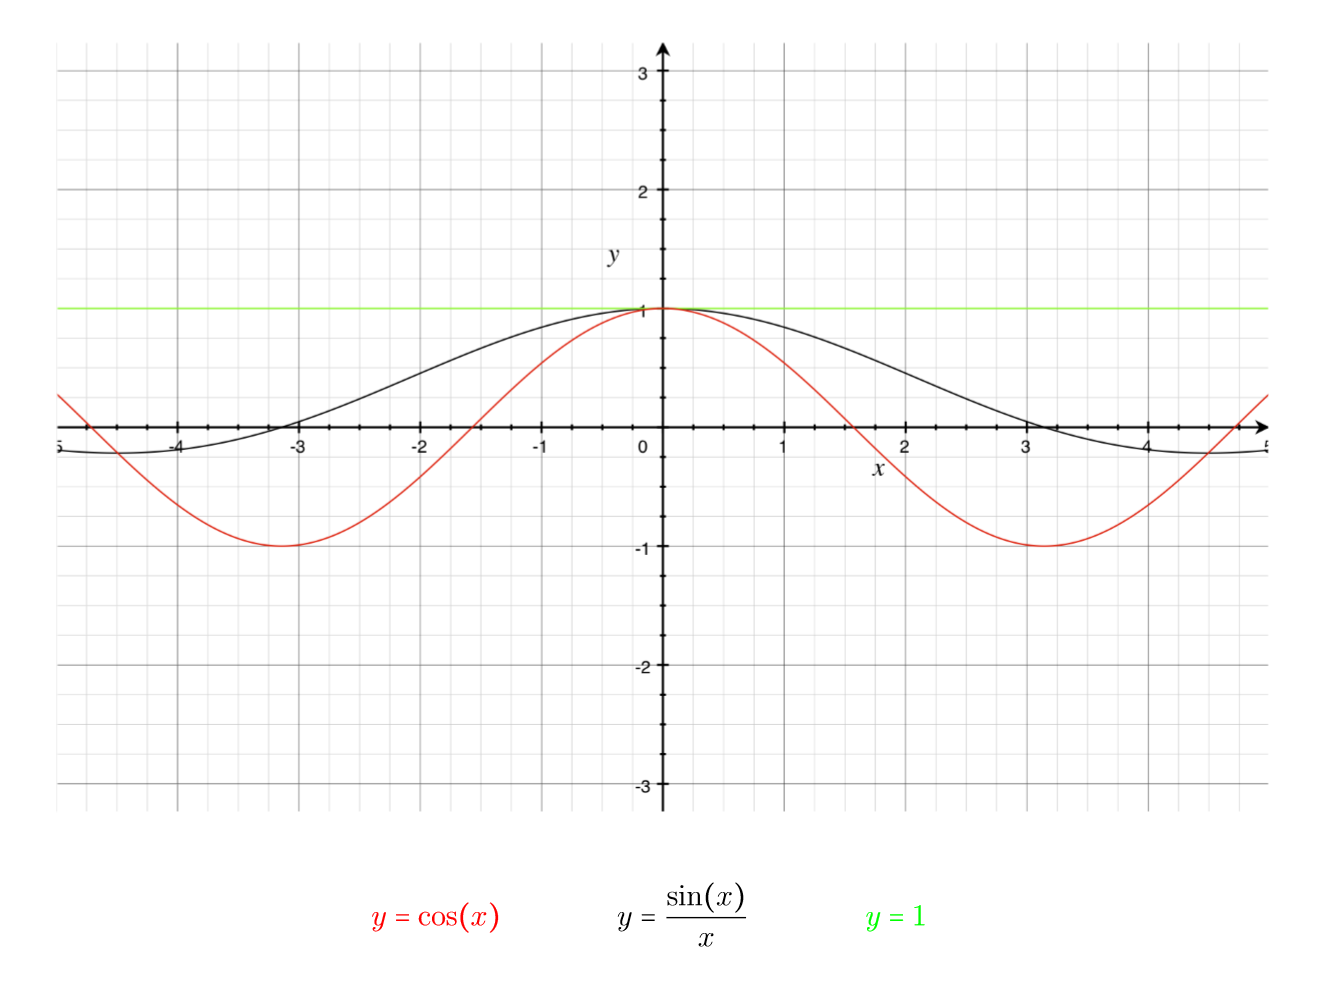 "Figure 2: As you can see graphically, for values of \( ϴ\) in the range \(\frac{-π}{2}<ϴ<\frac{π}{2}\), the following inequalities are true \(1≥\frac{sinϴ}{ϴ}≥cosϴ\).   Notice that as \(ϴ\) approaches zero from both the negative and positive directions, the function \(\frac{sinϴ}{ϴ}\) gets ""squeezed"" into the same point on the graph."